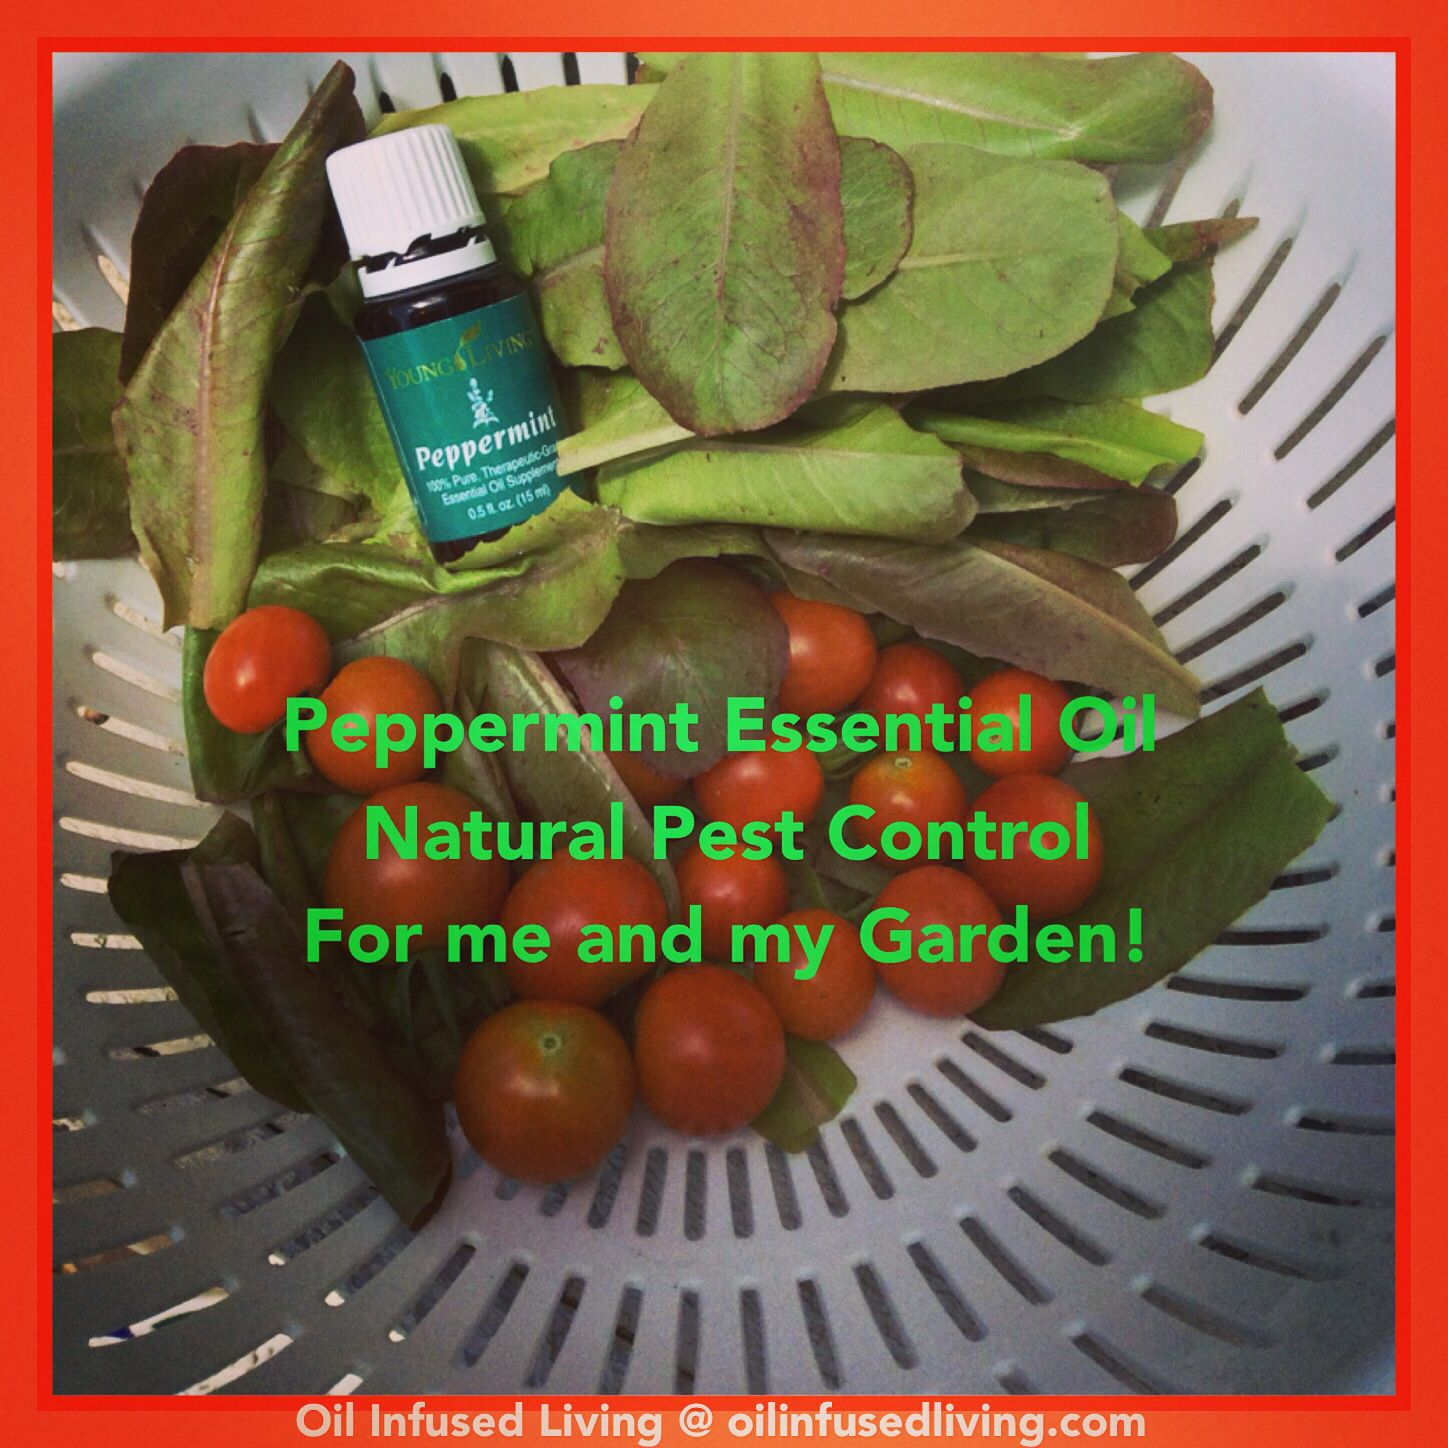 Peppermint Essential Oil For Organic Pest Control In My